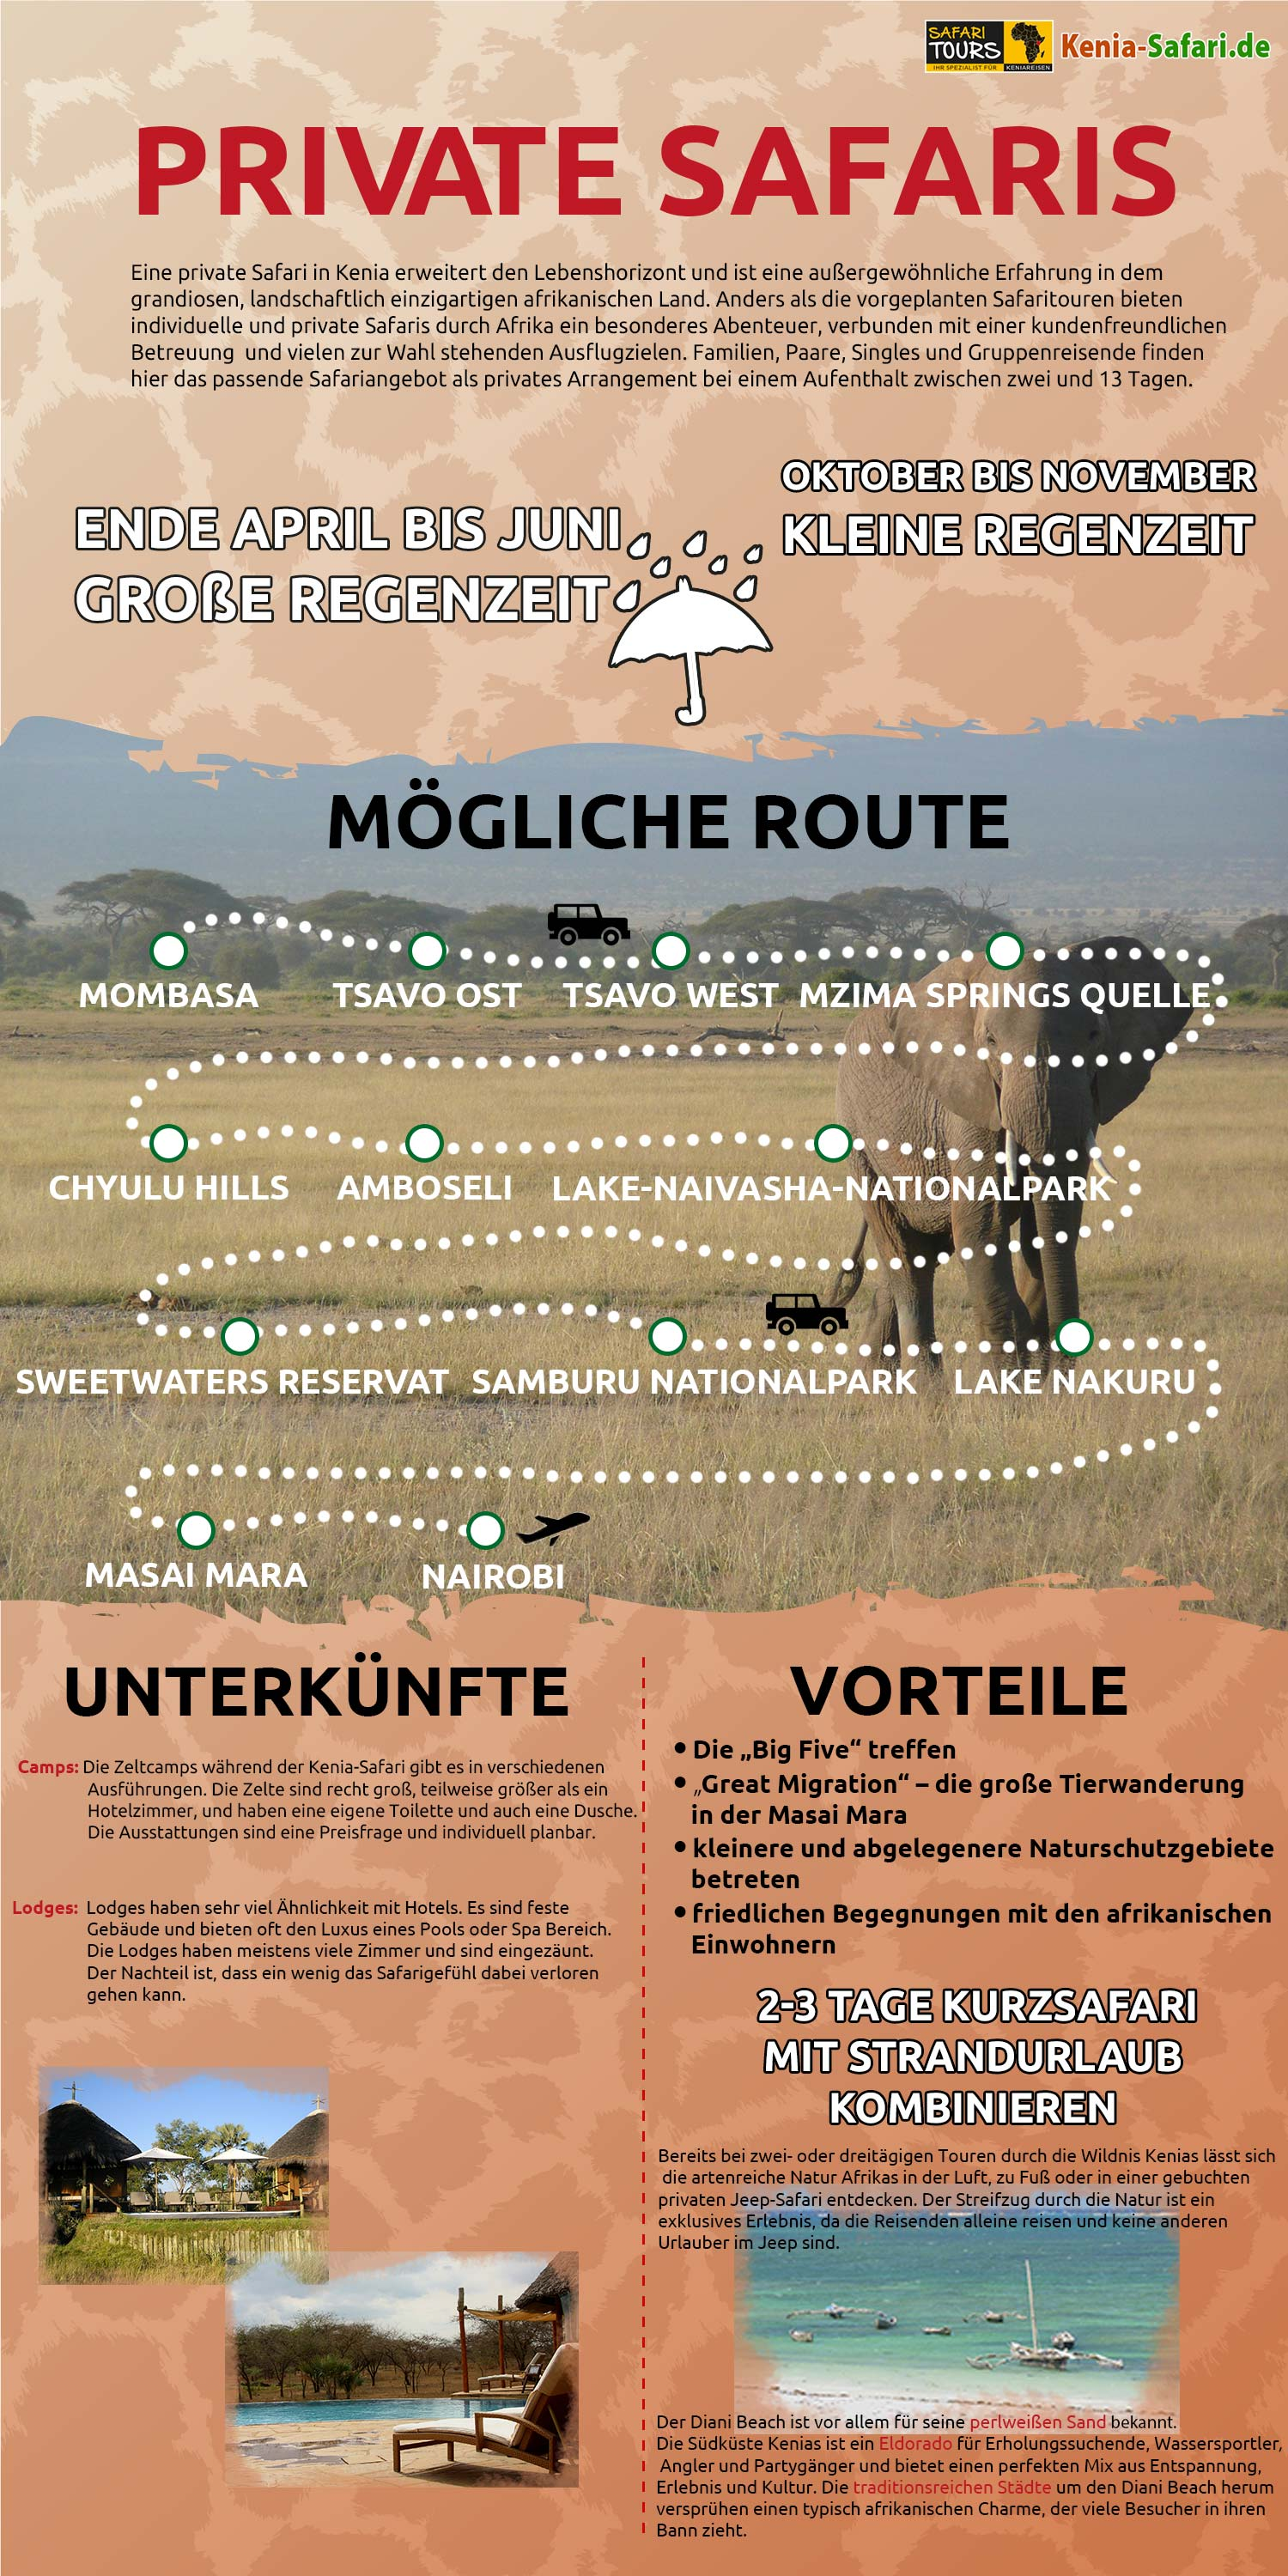 Infografik Private Safari durch Kenia